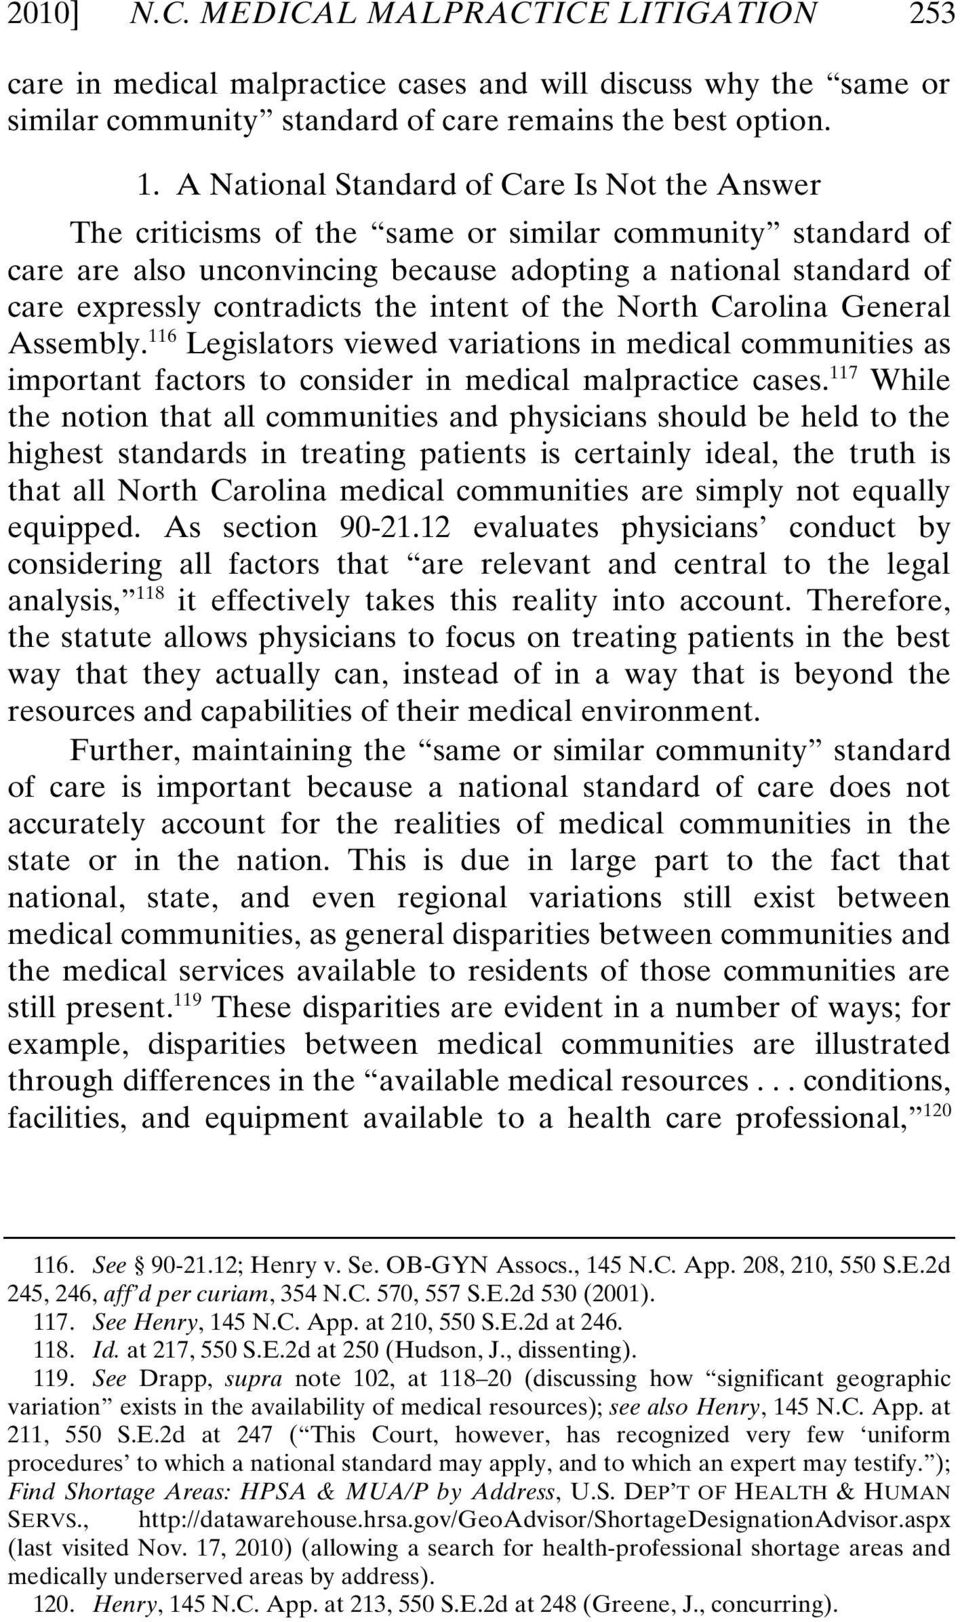 the intent of the North Carolina General Assembly. 116 Legislators viewed variations in medical communities as important factors to consider in medical malpractice cases.